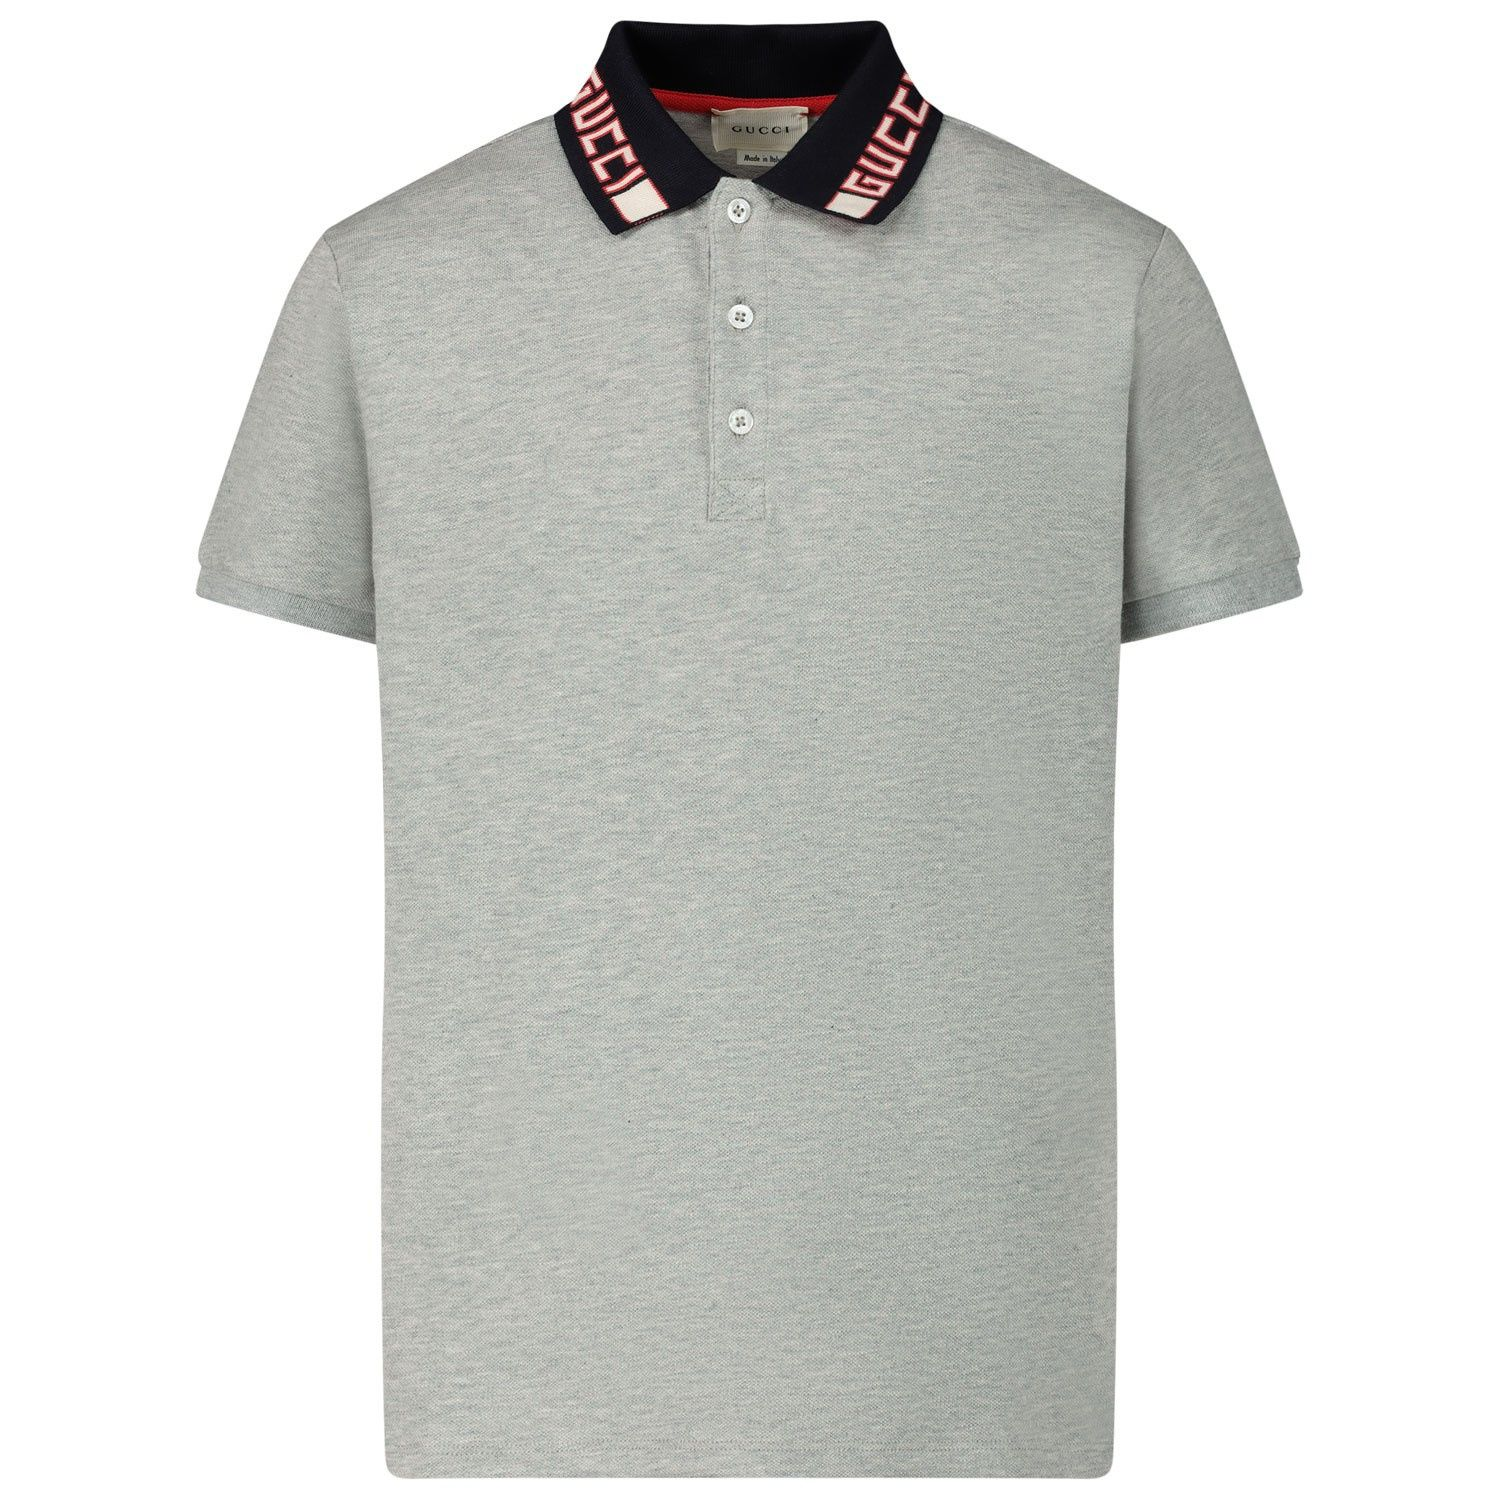 Picture of Gucci 522342 kids polo shirt light gray